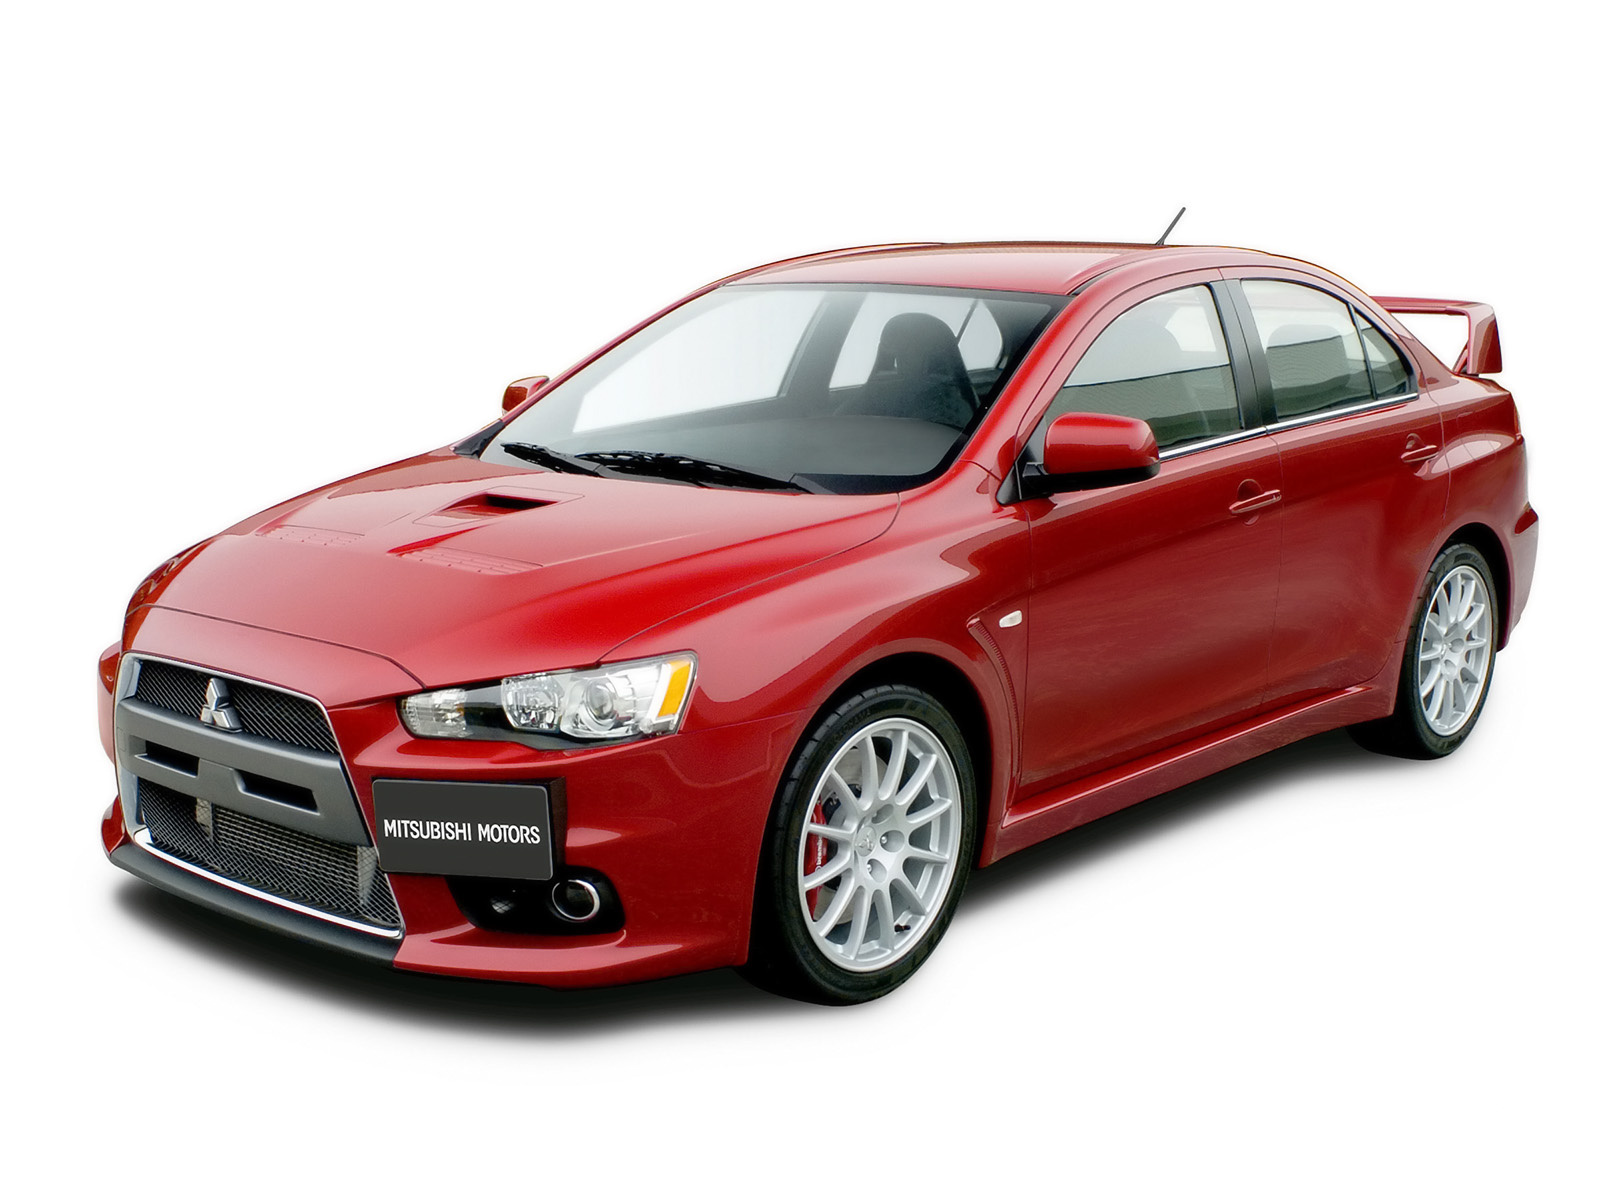 Picture Of 2006 Mitsubishi Lancer Evolution Exterior Gallery Worthy